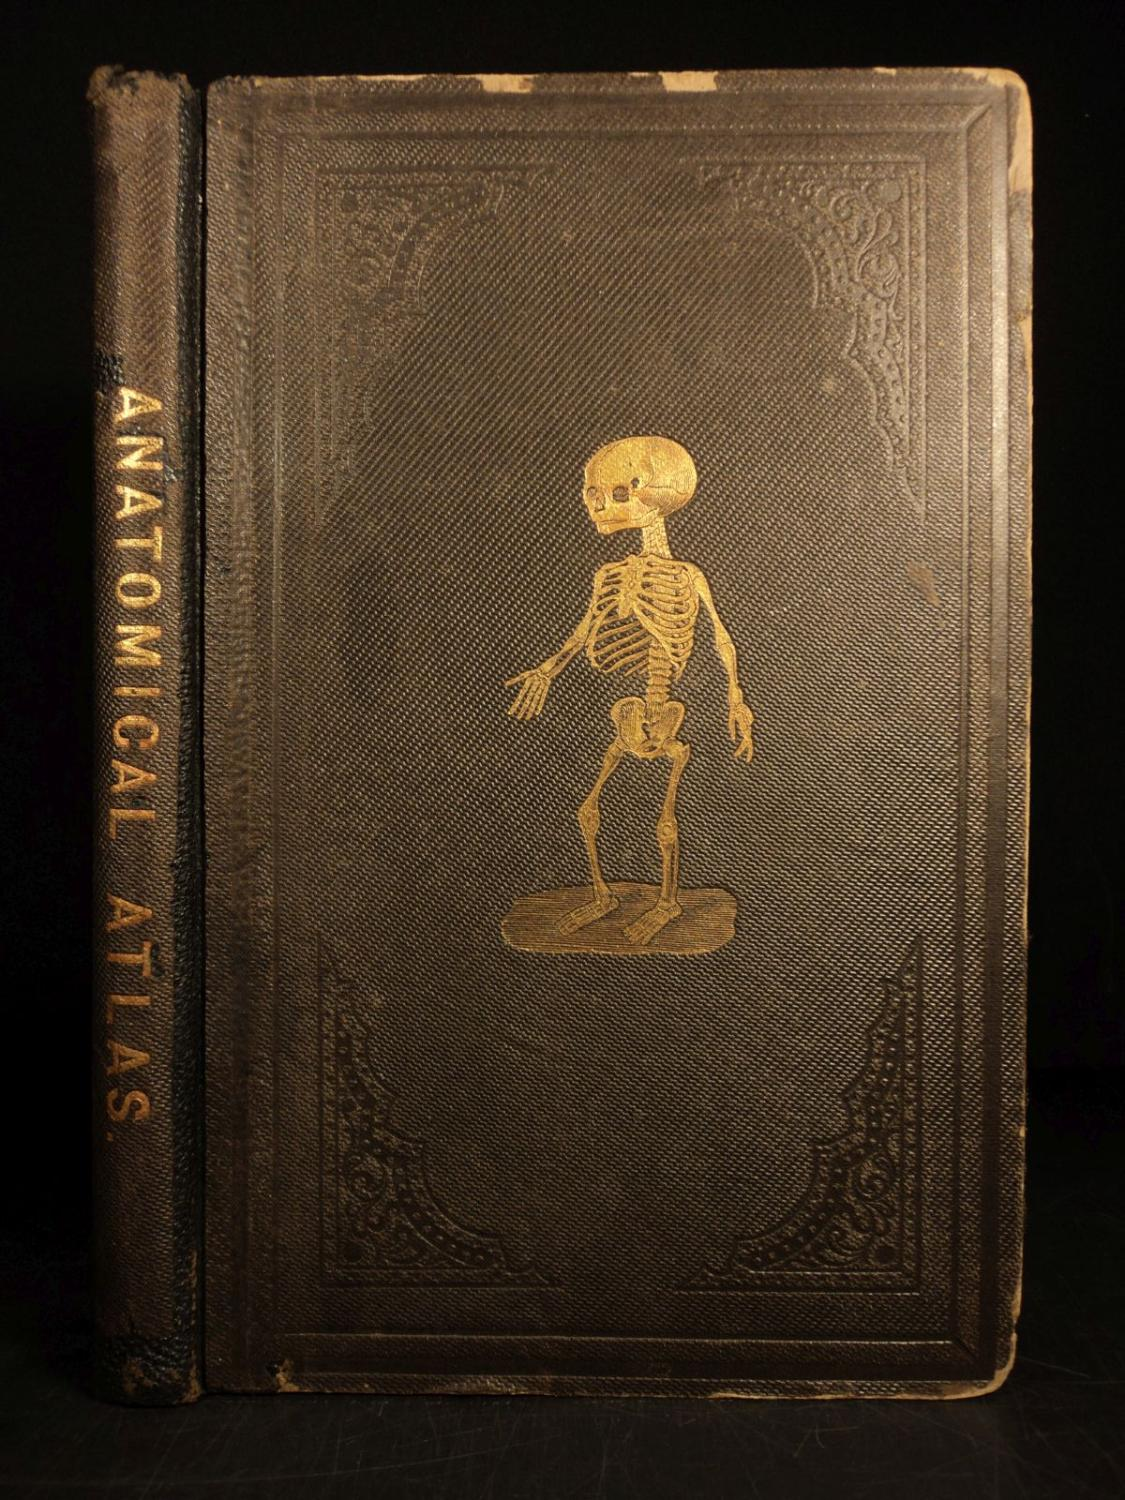 1859 Anatomical Atlas Illustrated Human Anatomy Bone Tissue